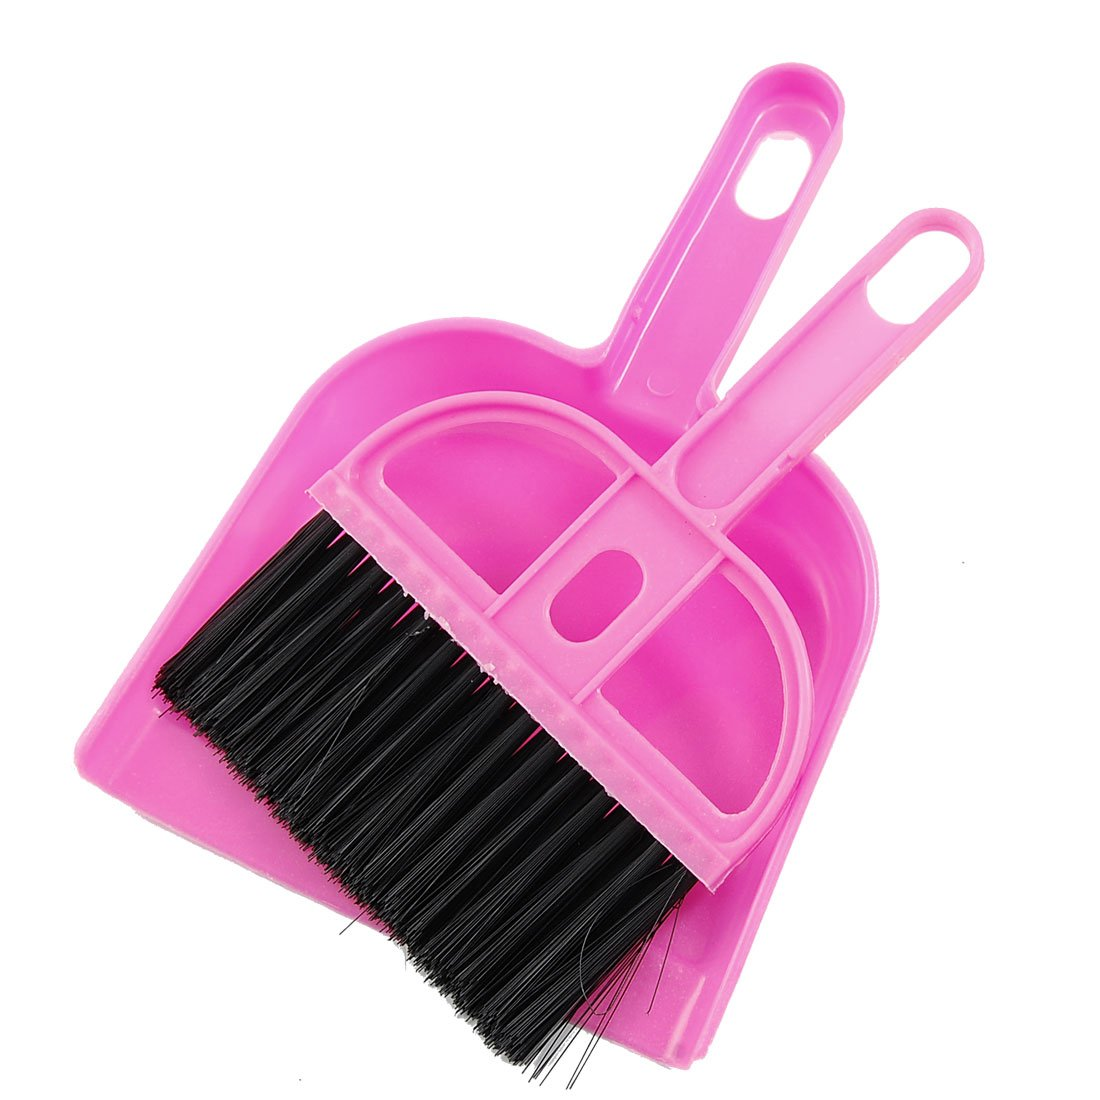 IMC Wholesale 2015 Highly CommendTOP! Amico Office Home Car Cleaning Mini Whisk Broom Dustpan Set Pink Black(China (Mainland))